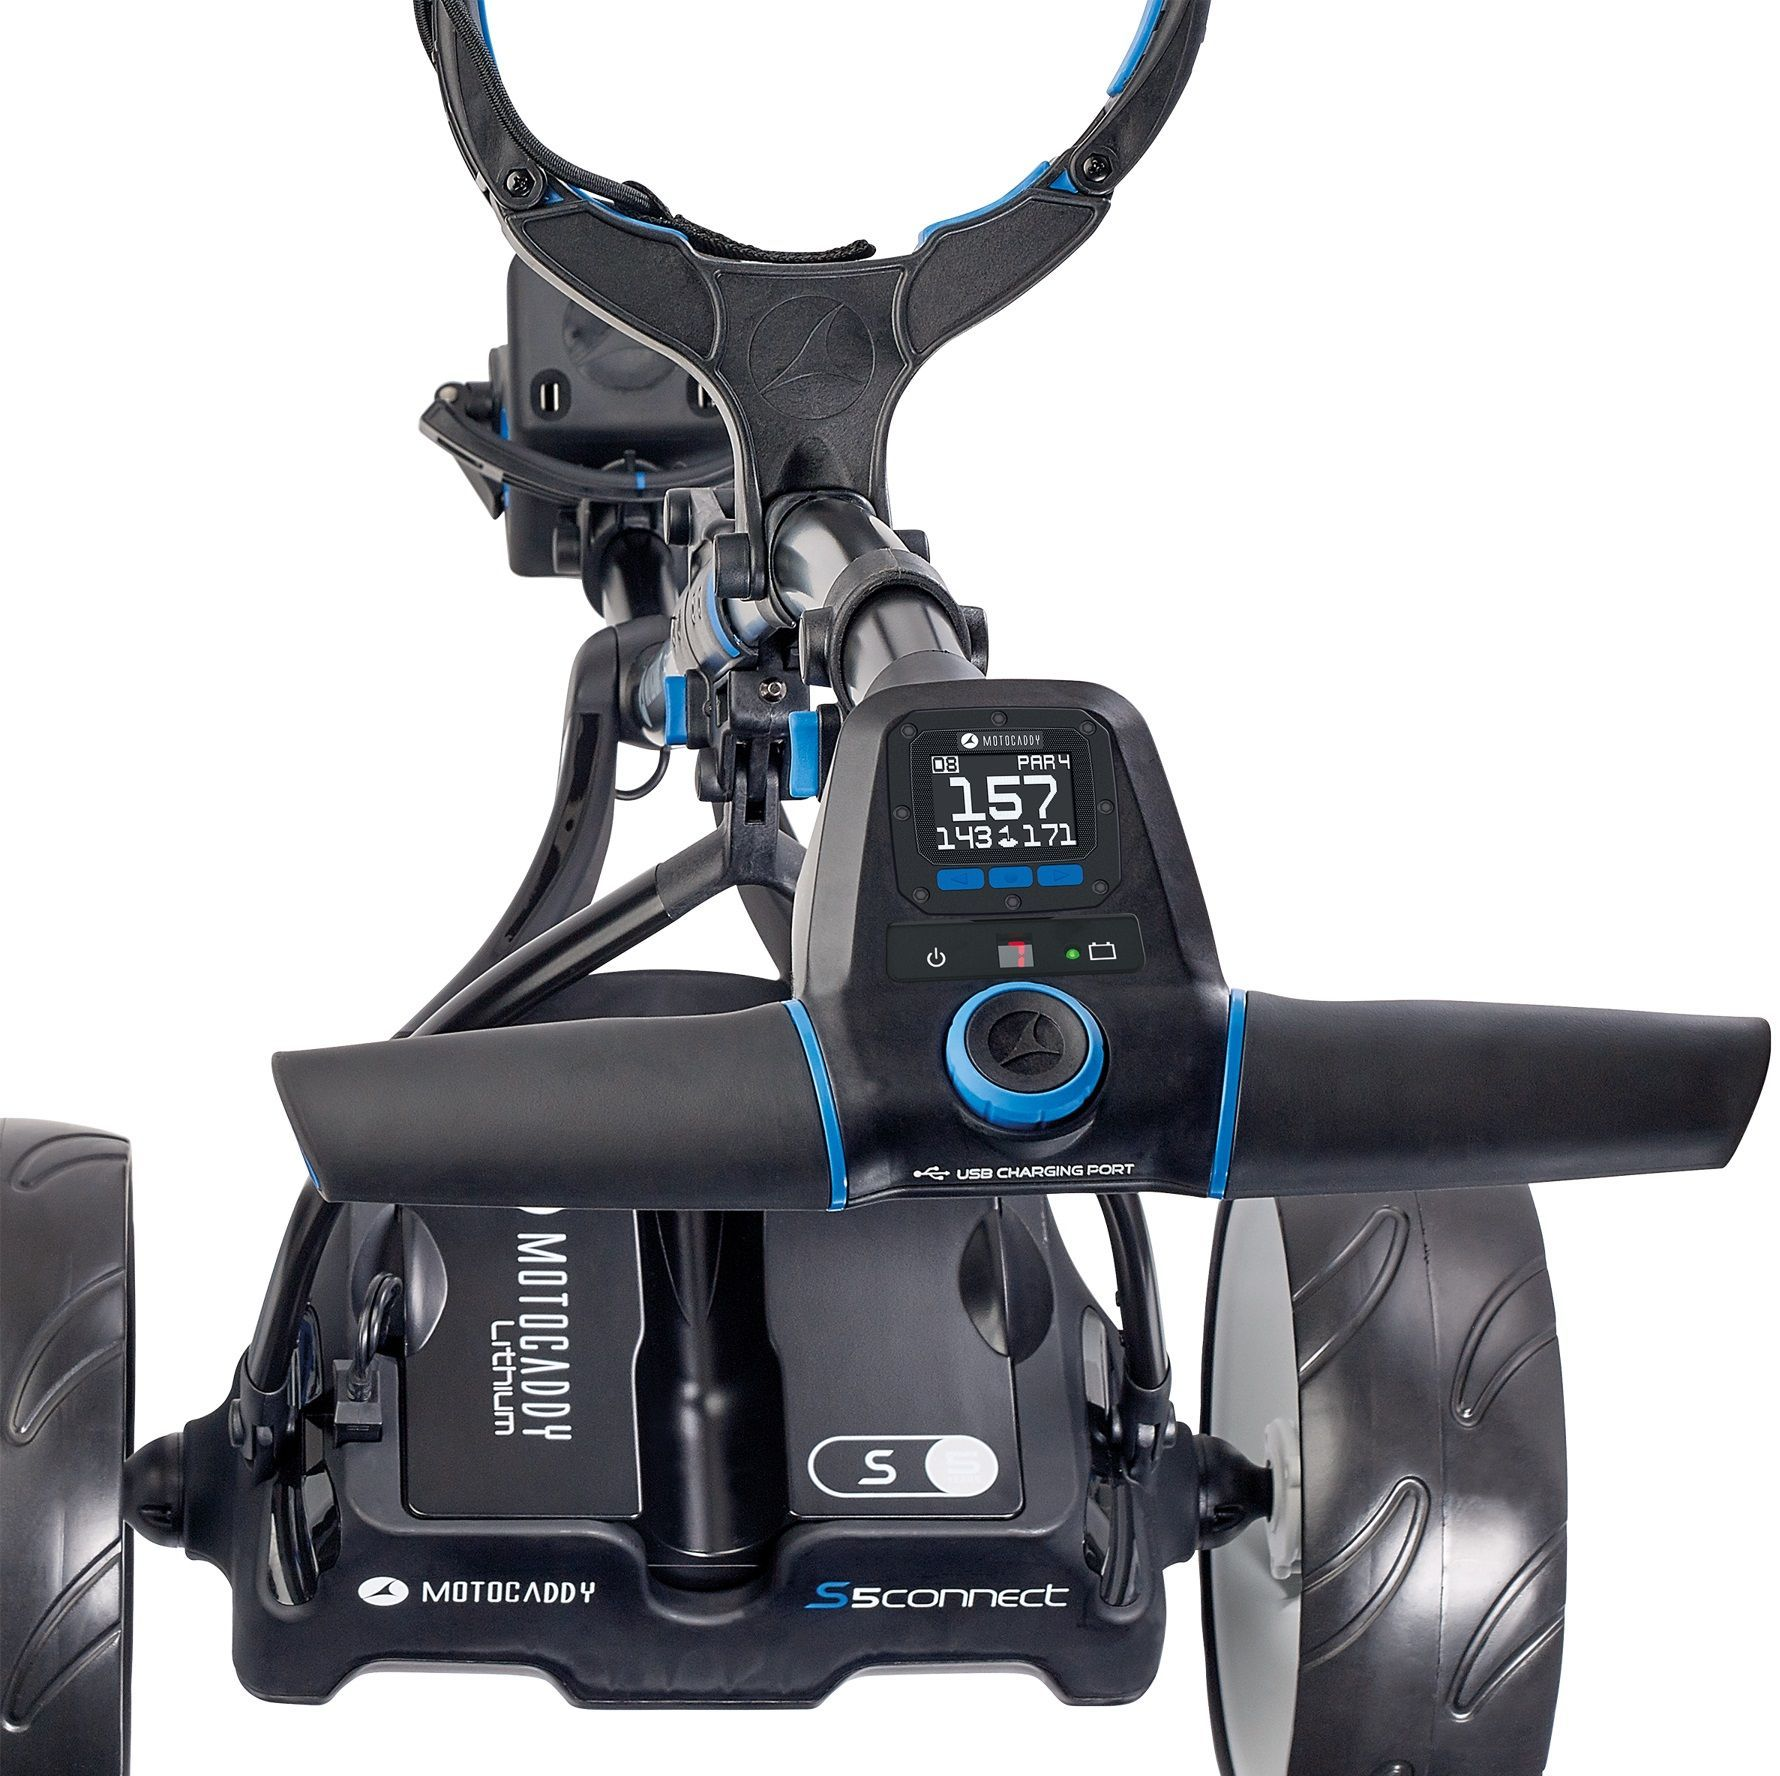 Motocaddy S5 CONNECT 3454